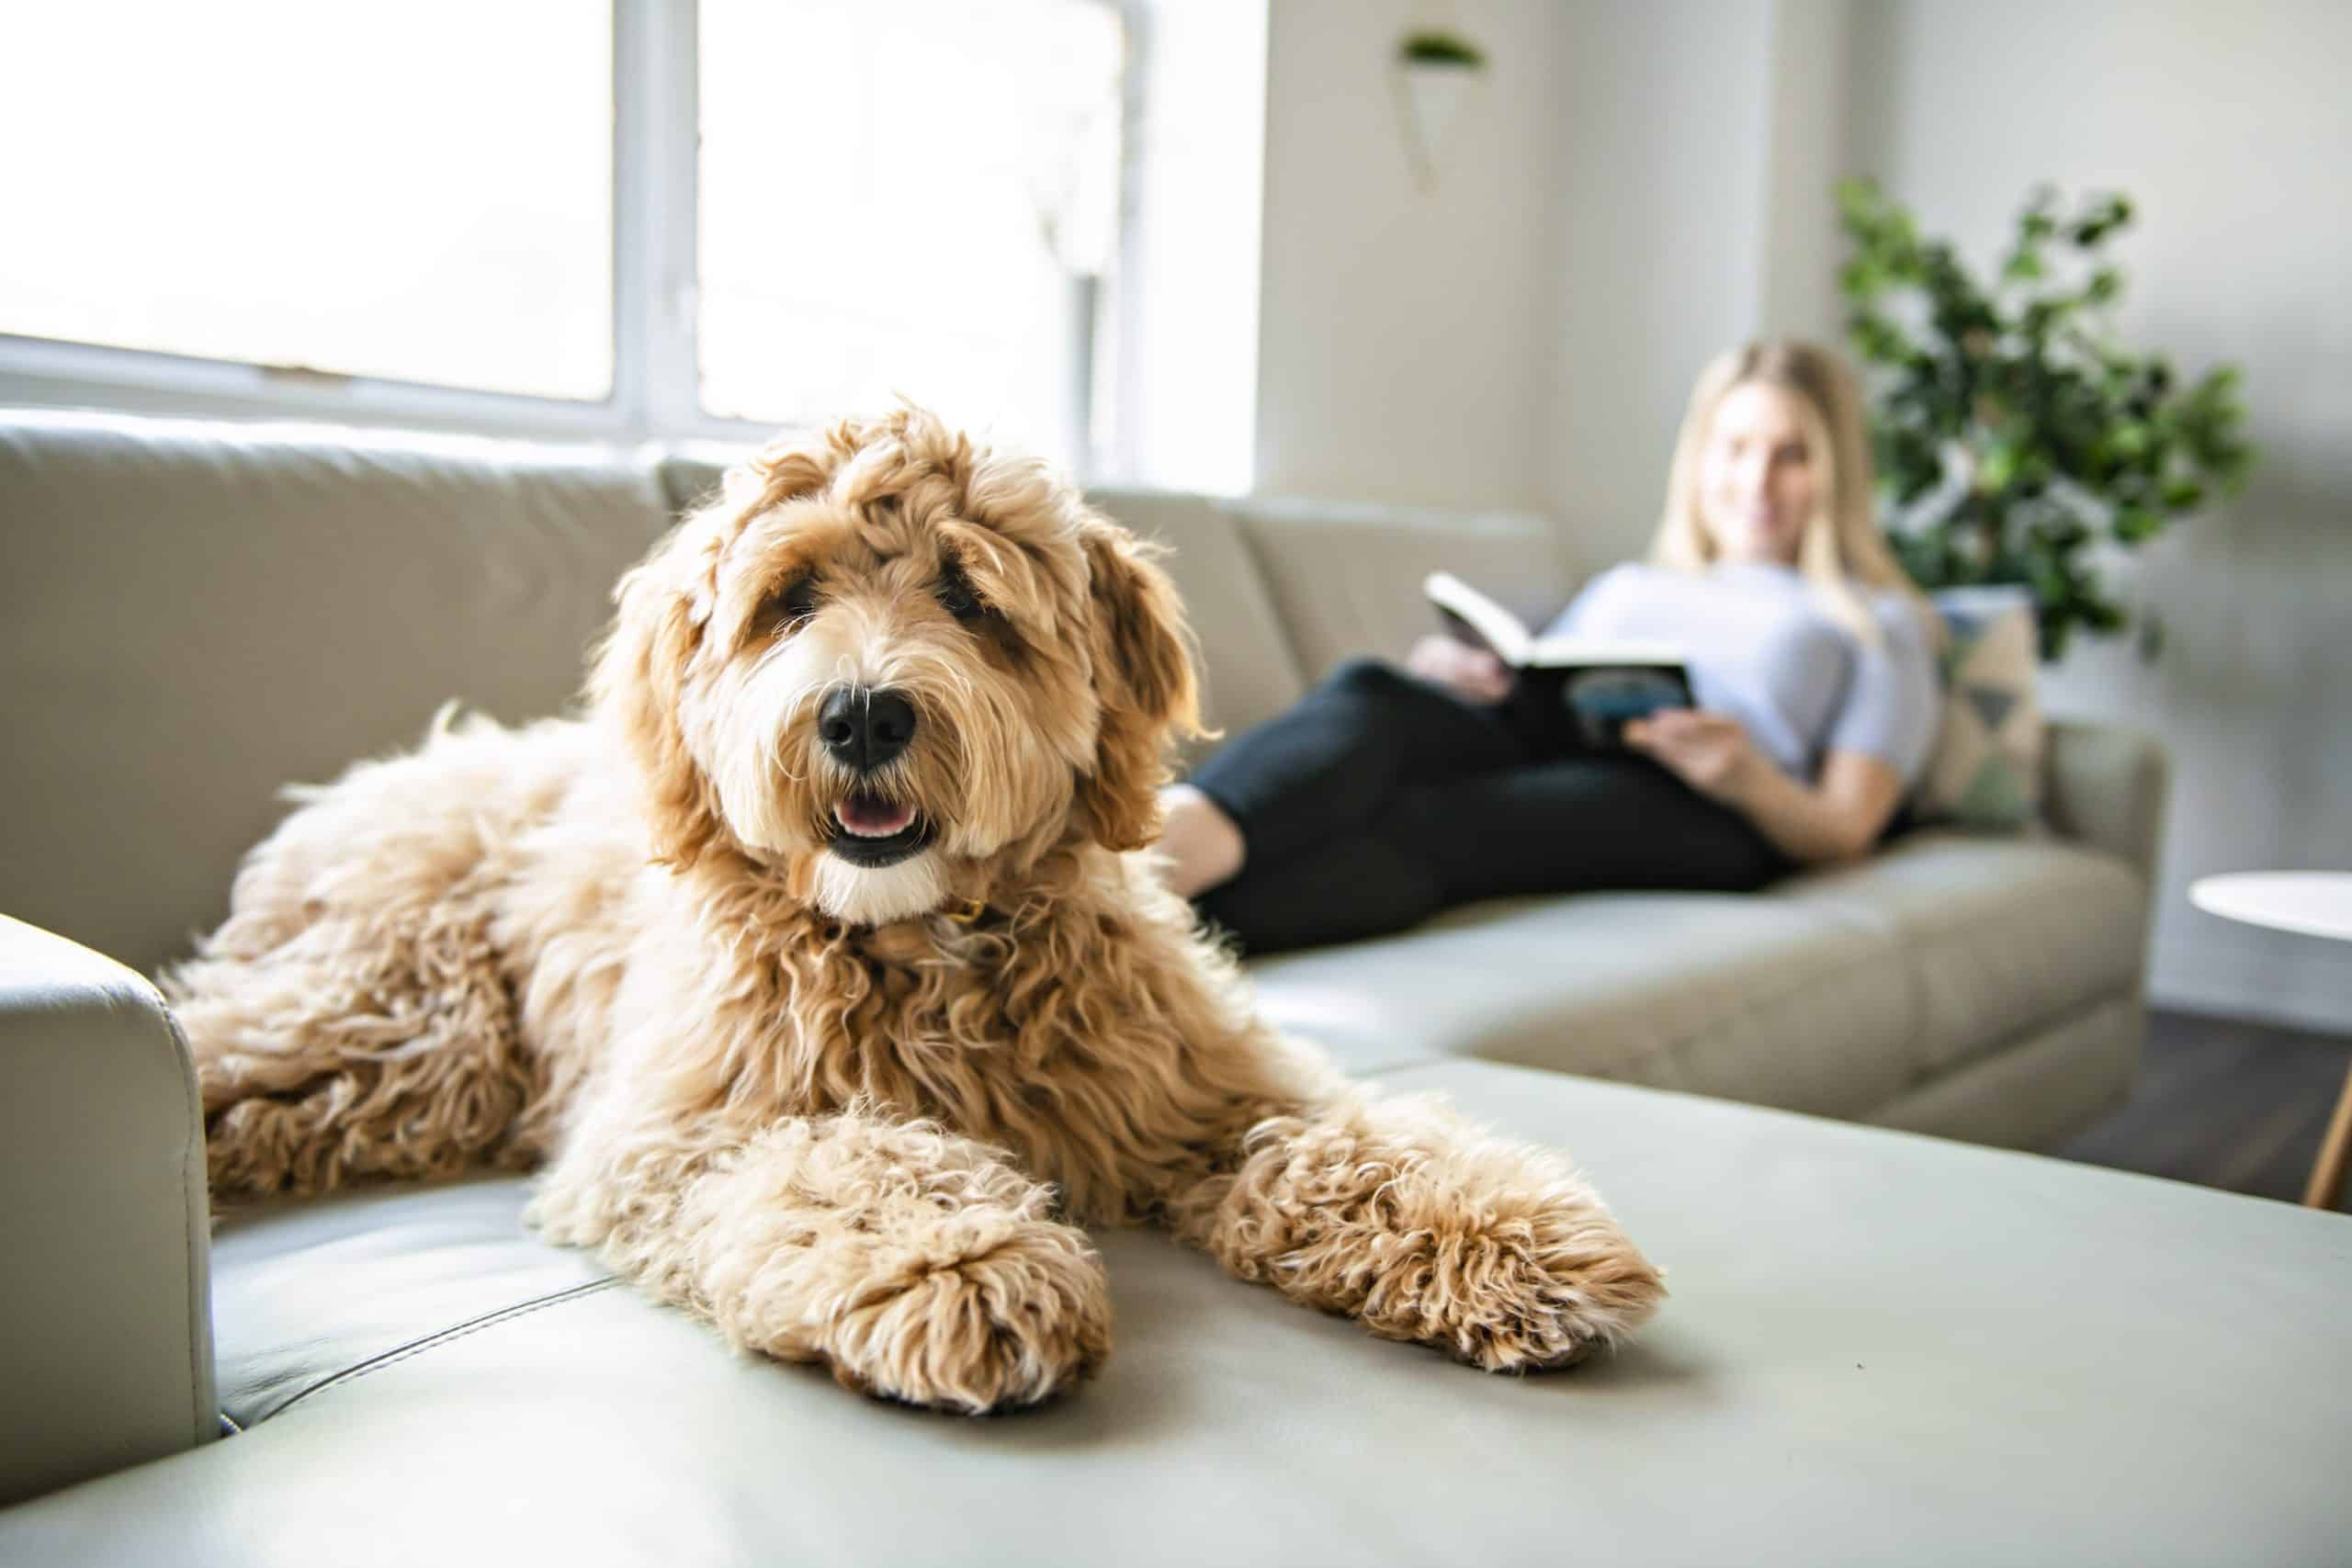 The poodle is considered a hypoallergenic dog breed.